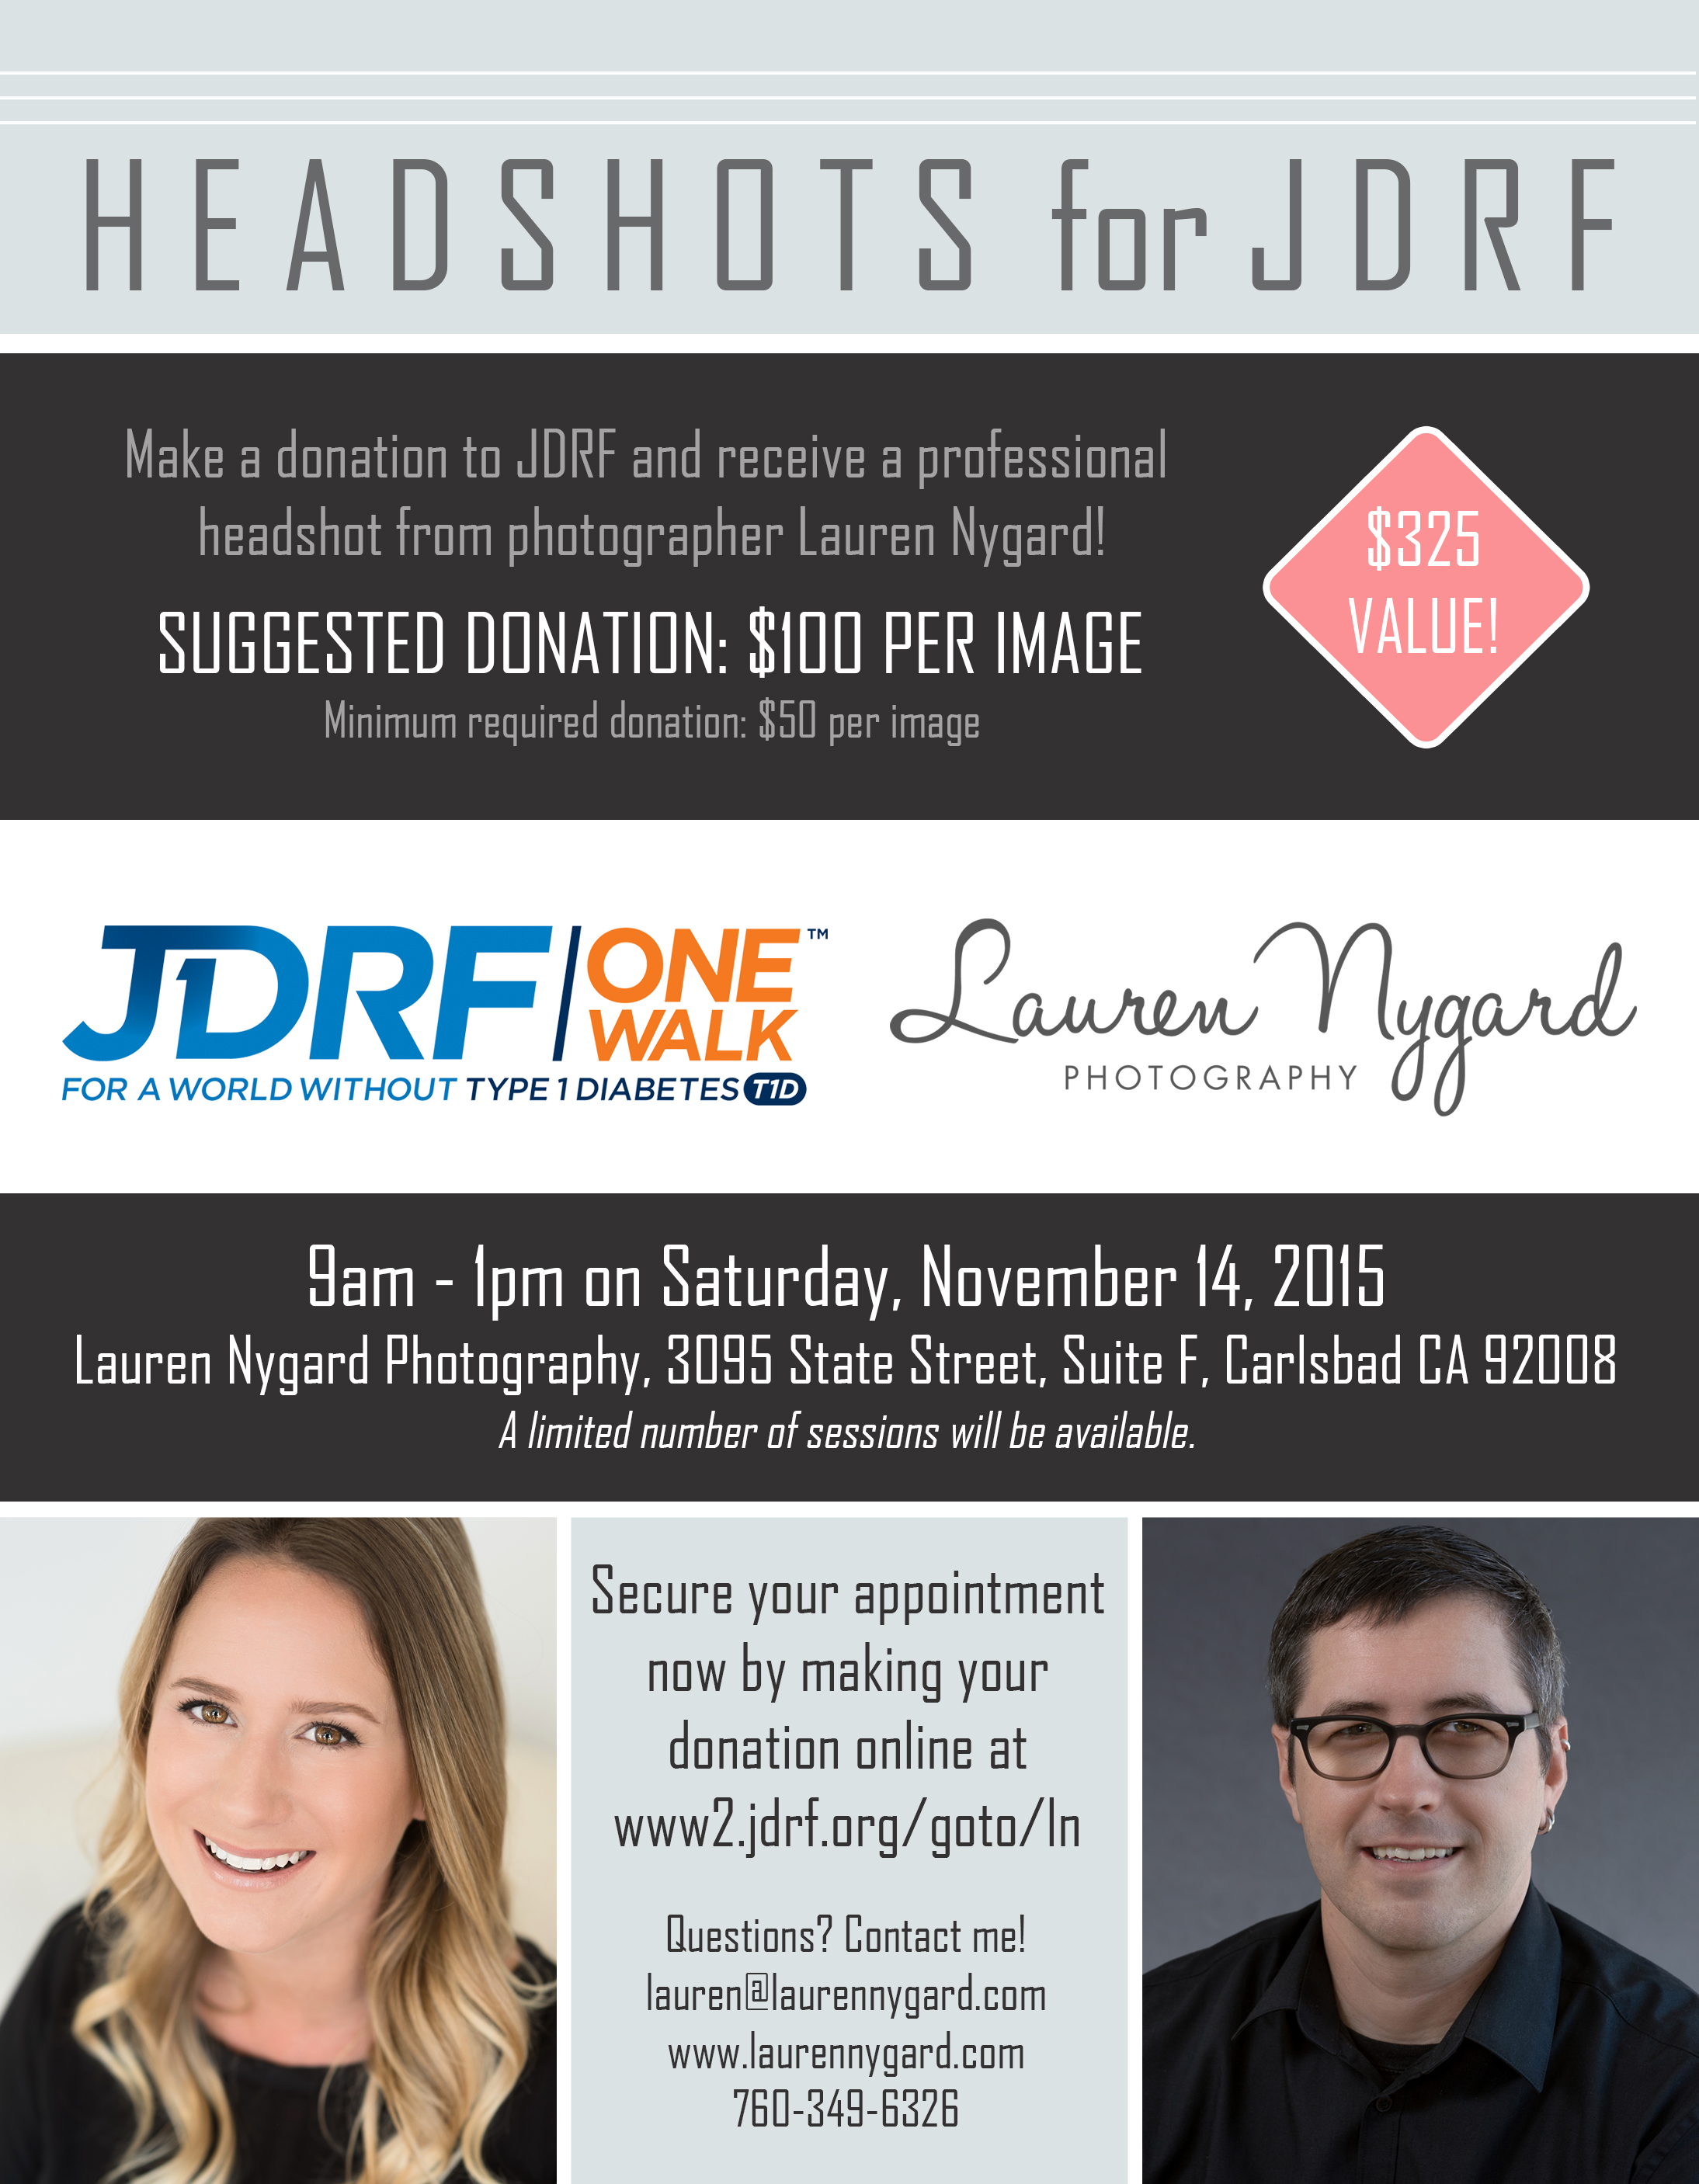 Headshot Fundraiser in Carlsbad Village to benefit JDRF and Type 1 Diabetes Research from Lauren Nygard